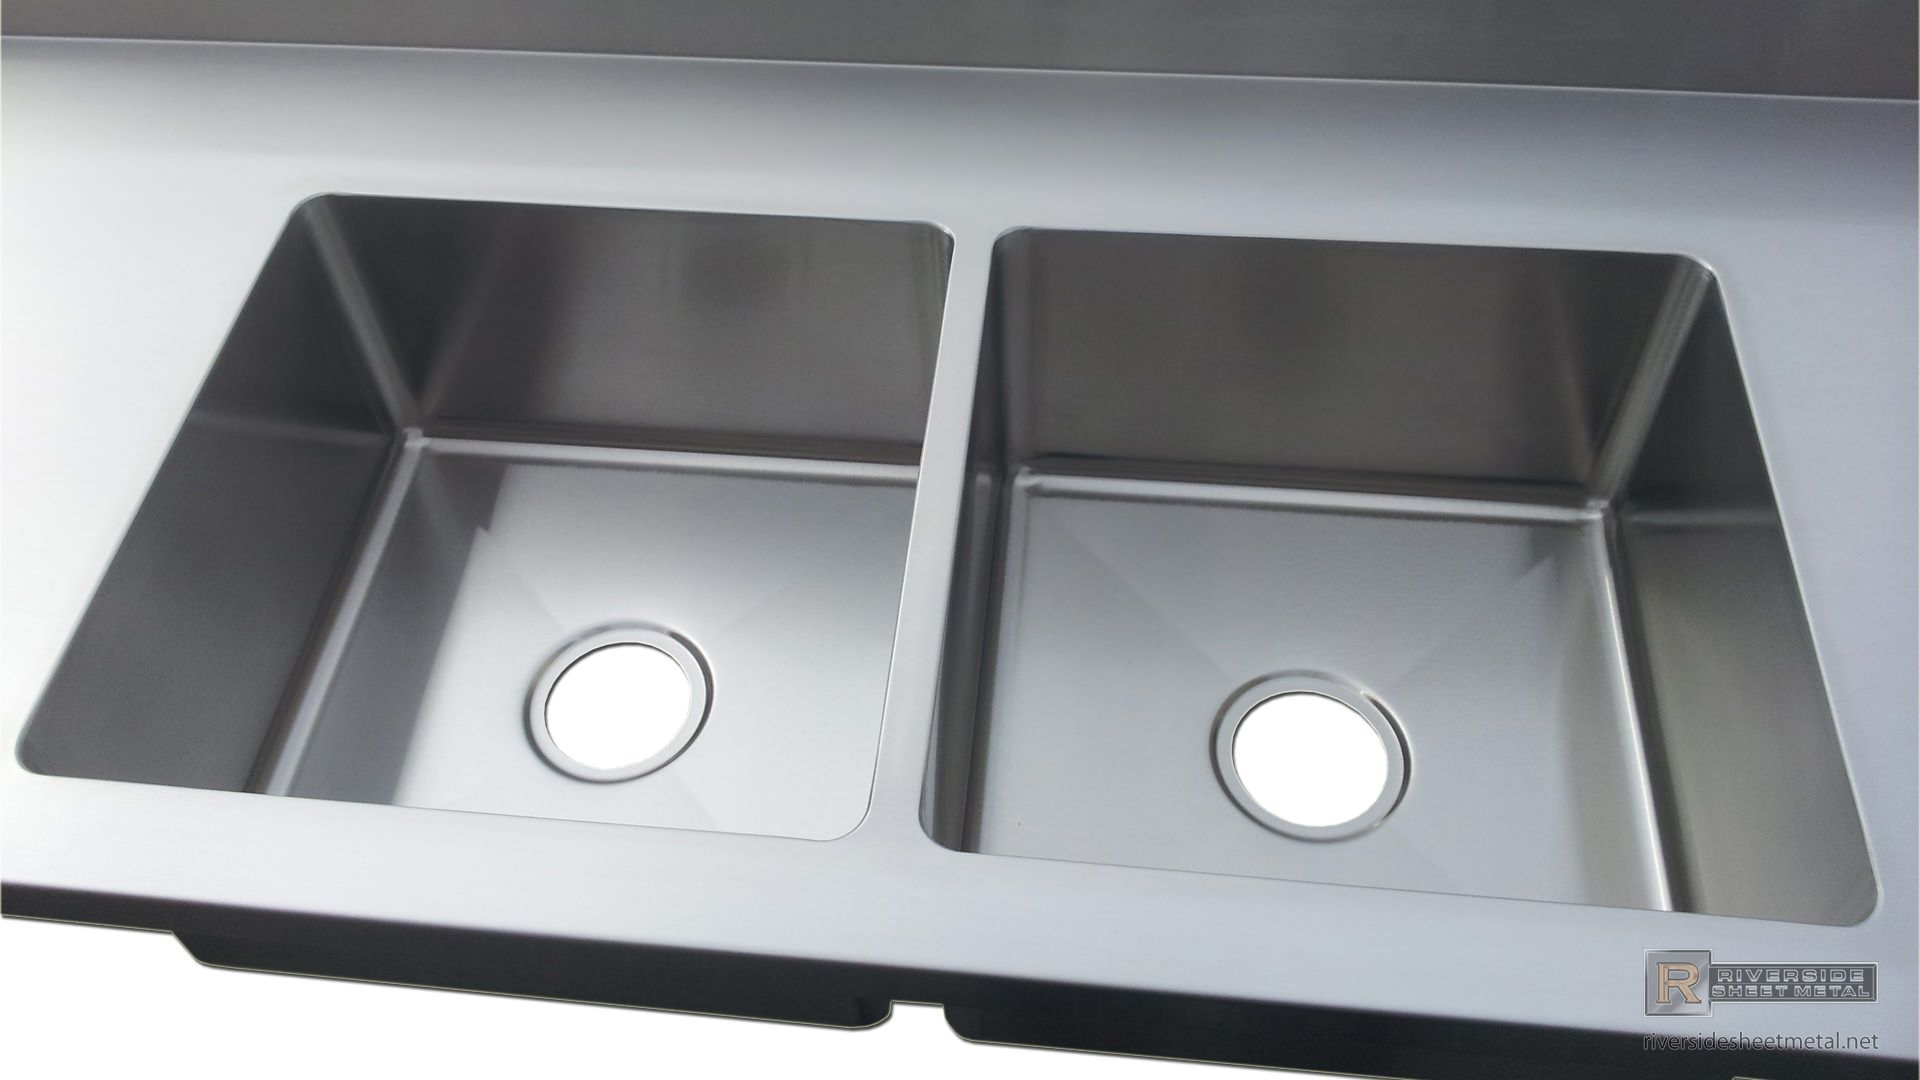 2 Integrated Sinks On Number 4 Finish Counter Top Detail Stainless Steel Counters Countertops Diy Countertops